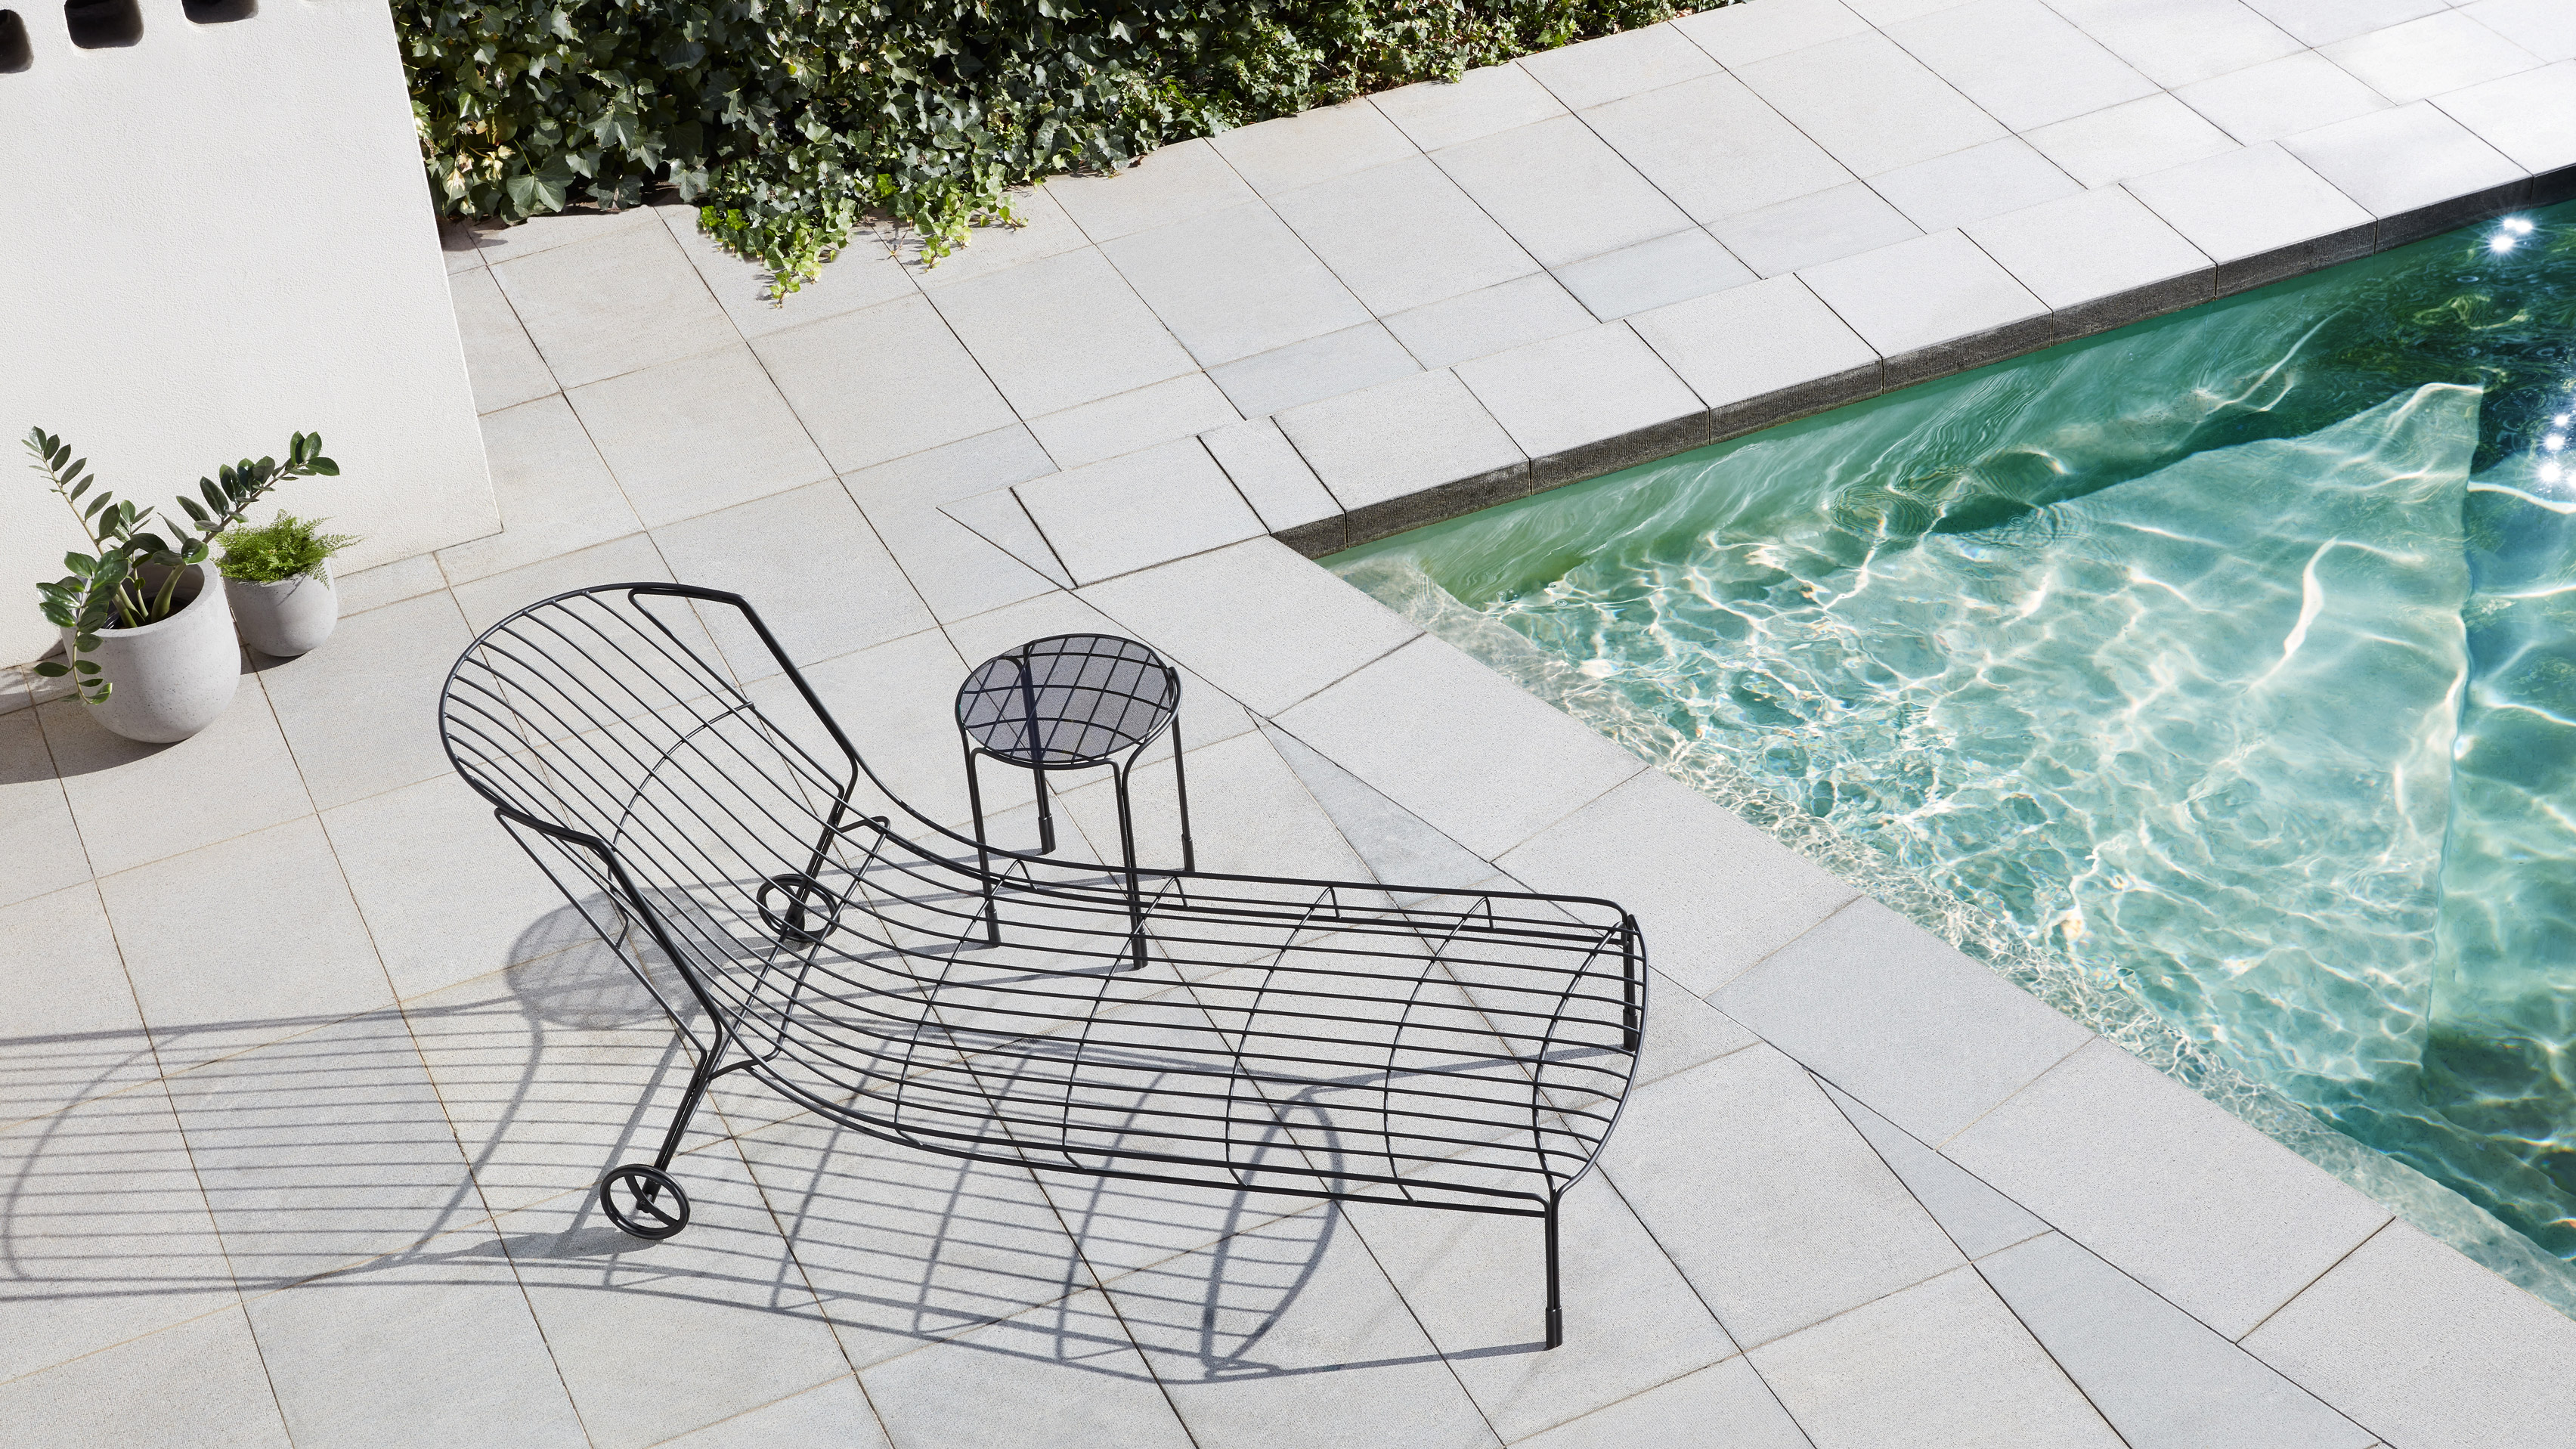 Captivating Trent Jansen Designs Taitu0027s Tidal Sunlounger To Suit Australian Summers